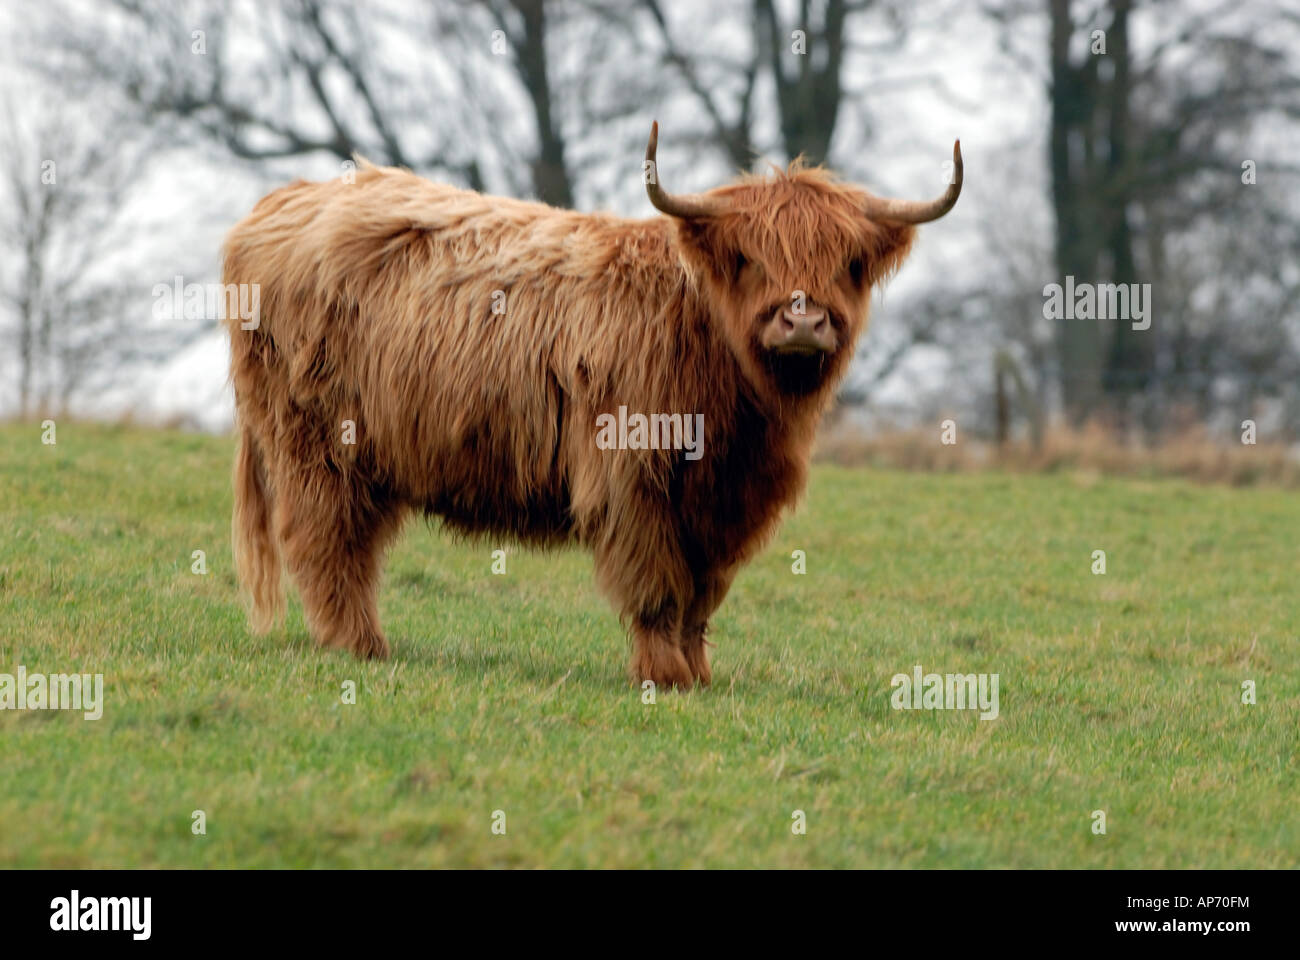 aberdeen angus highland cattle in a field stock photo royalty